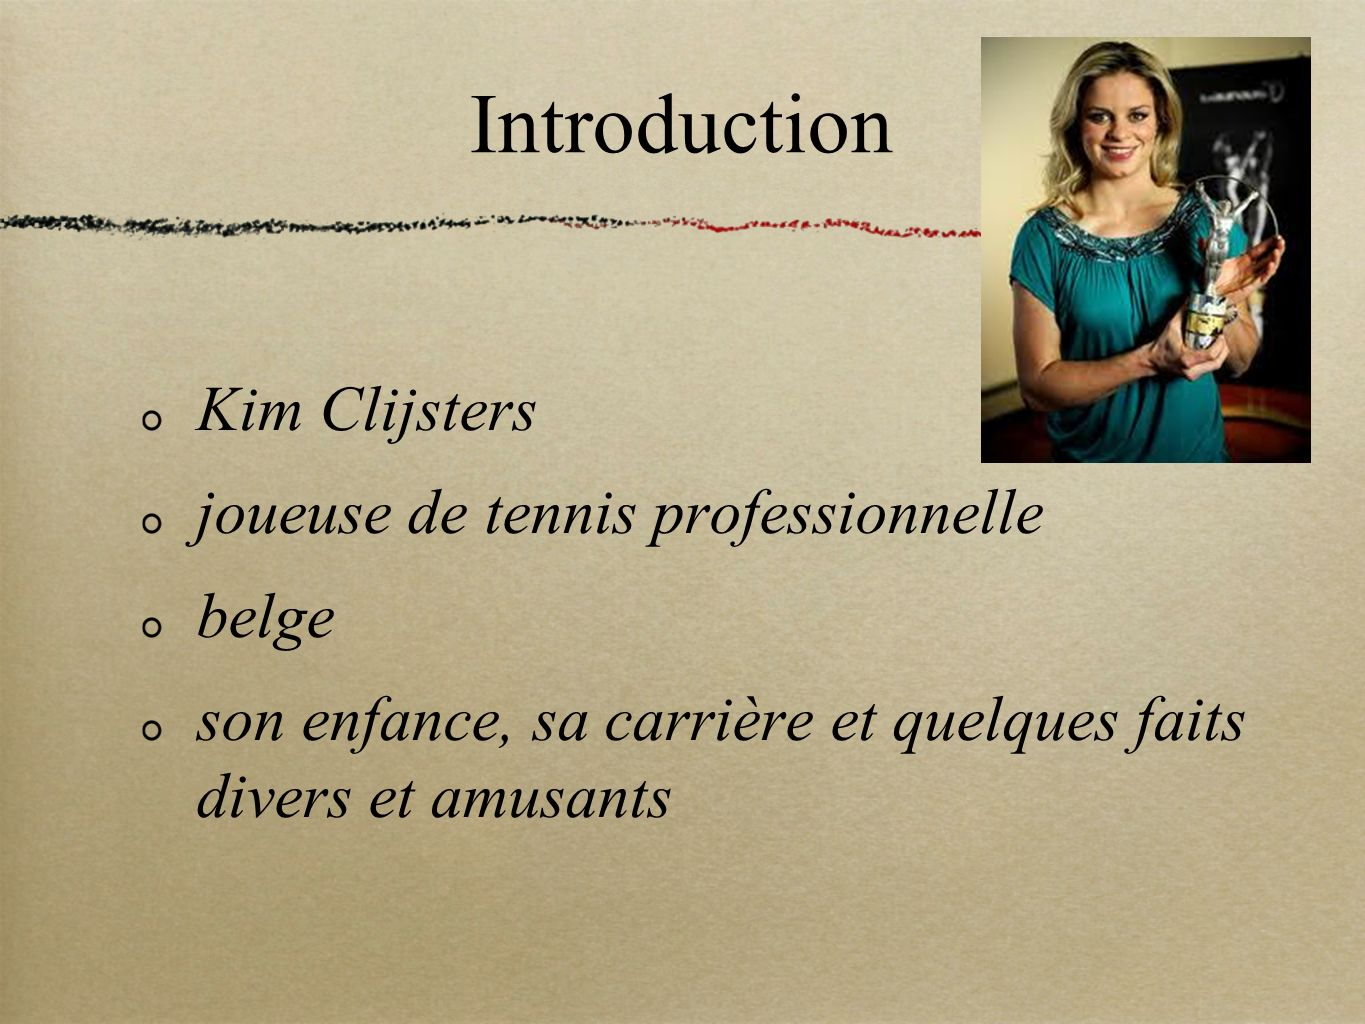 Introduction Kim Clijsters joueuse de tennis professionnelle belge